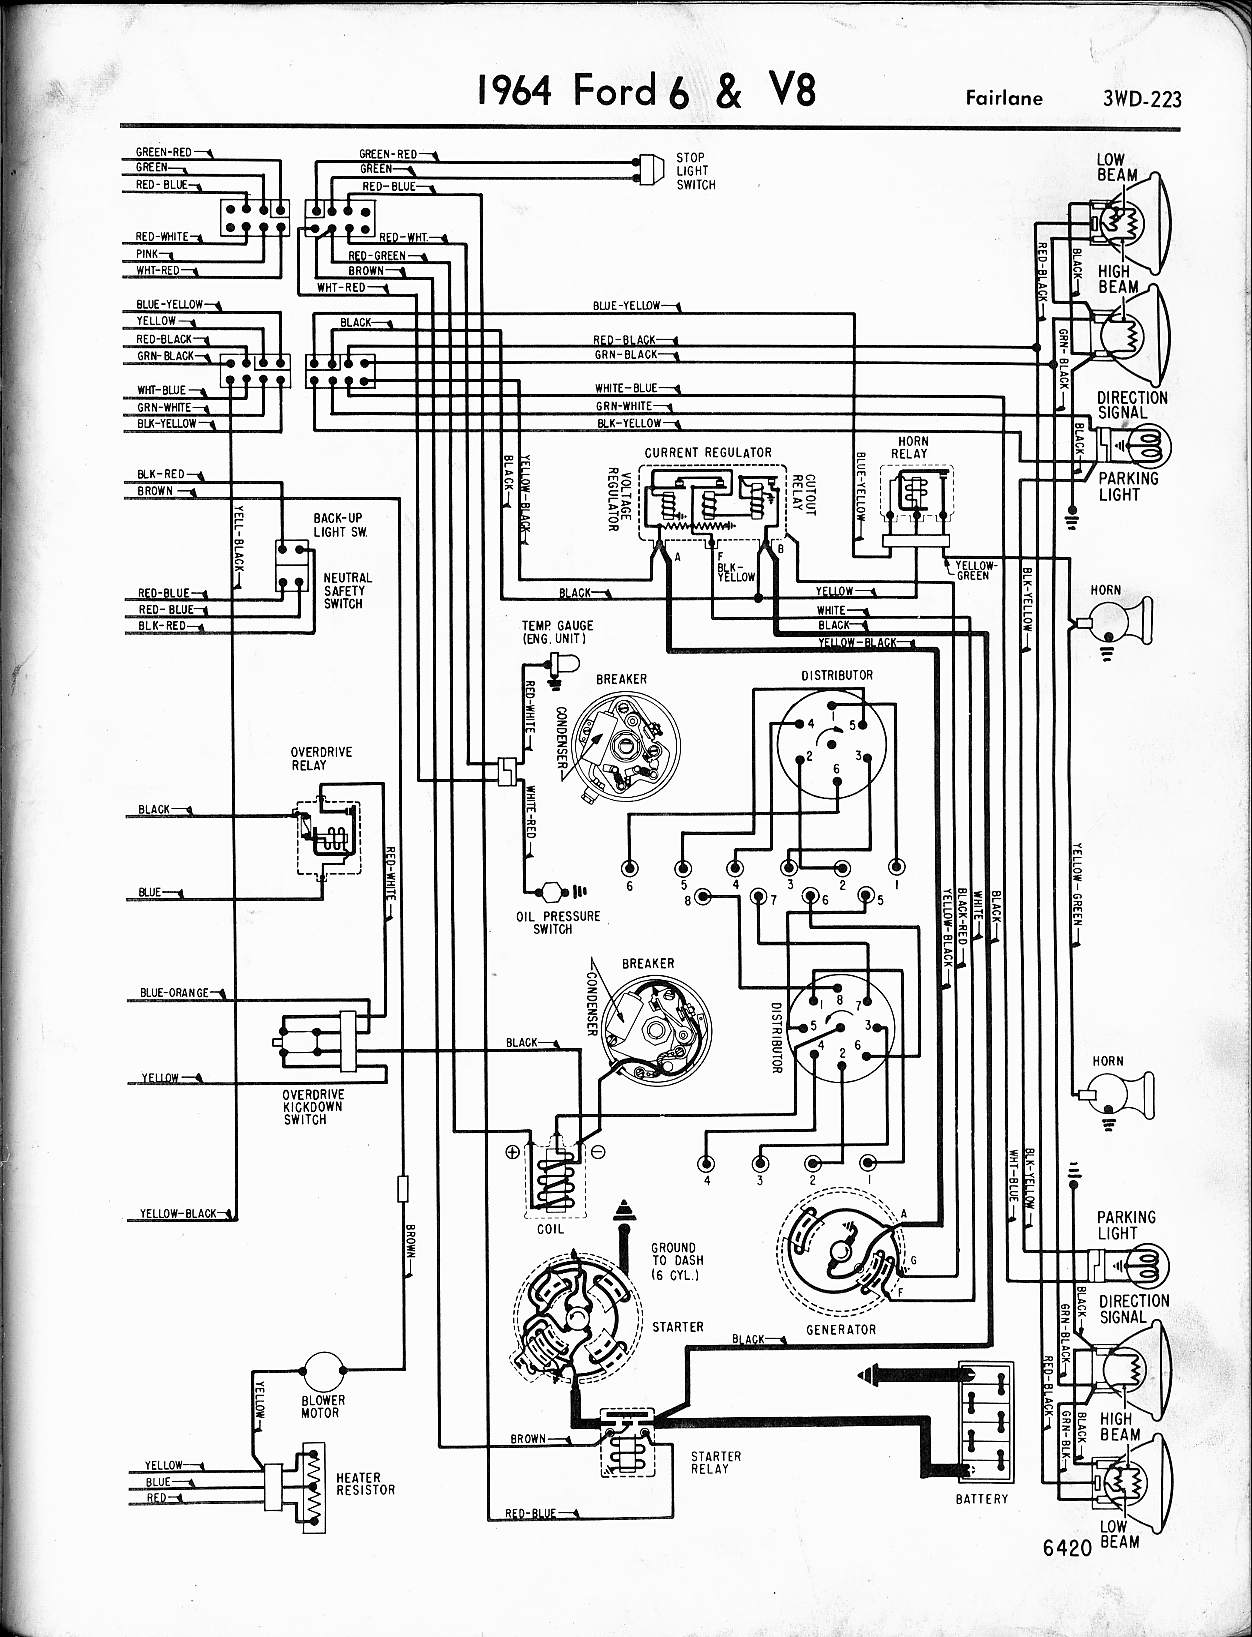 57 65 ford wiring diagrams 1964 6 v8 galaxie left